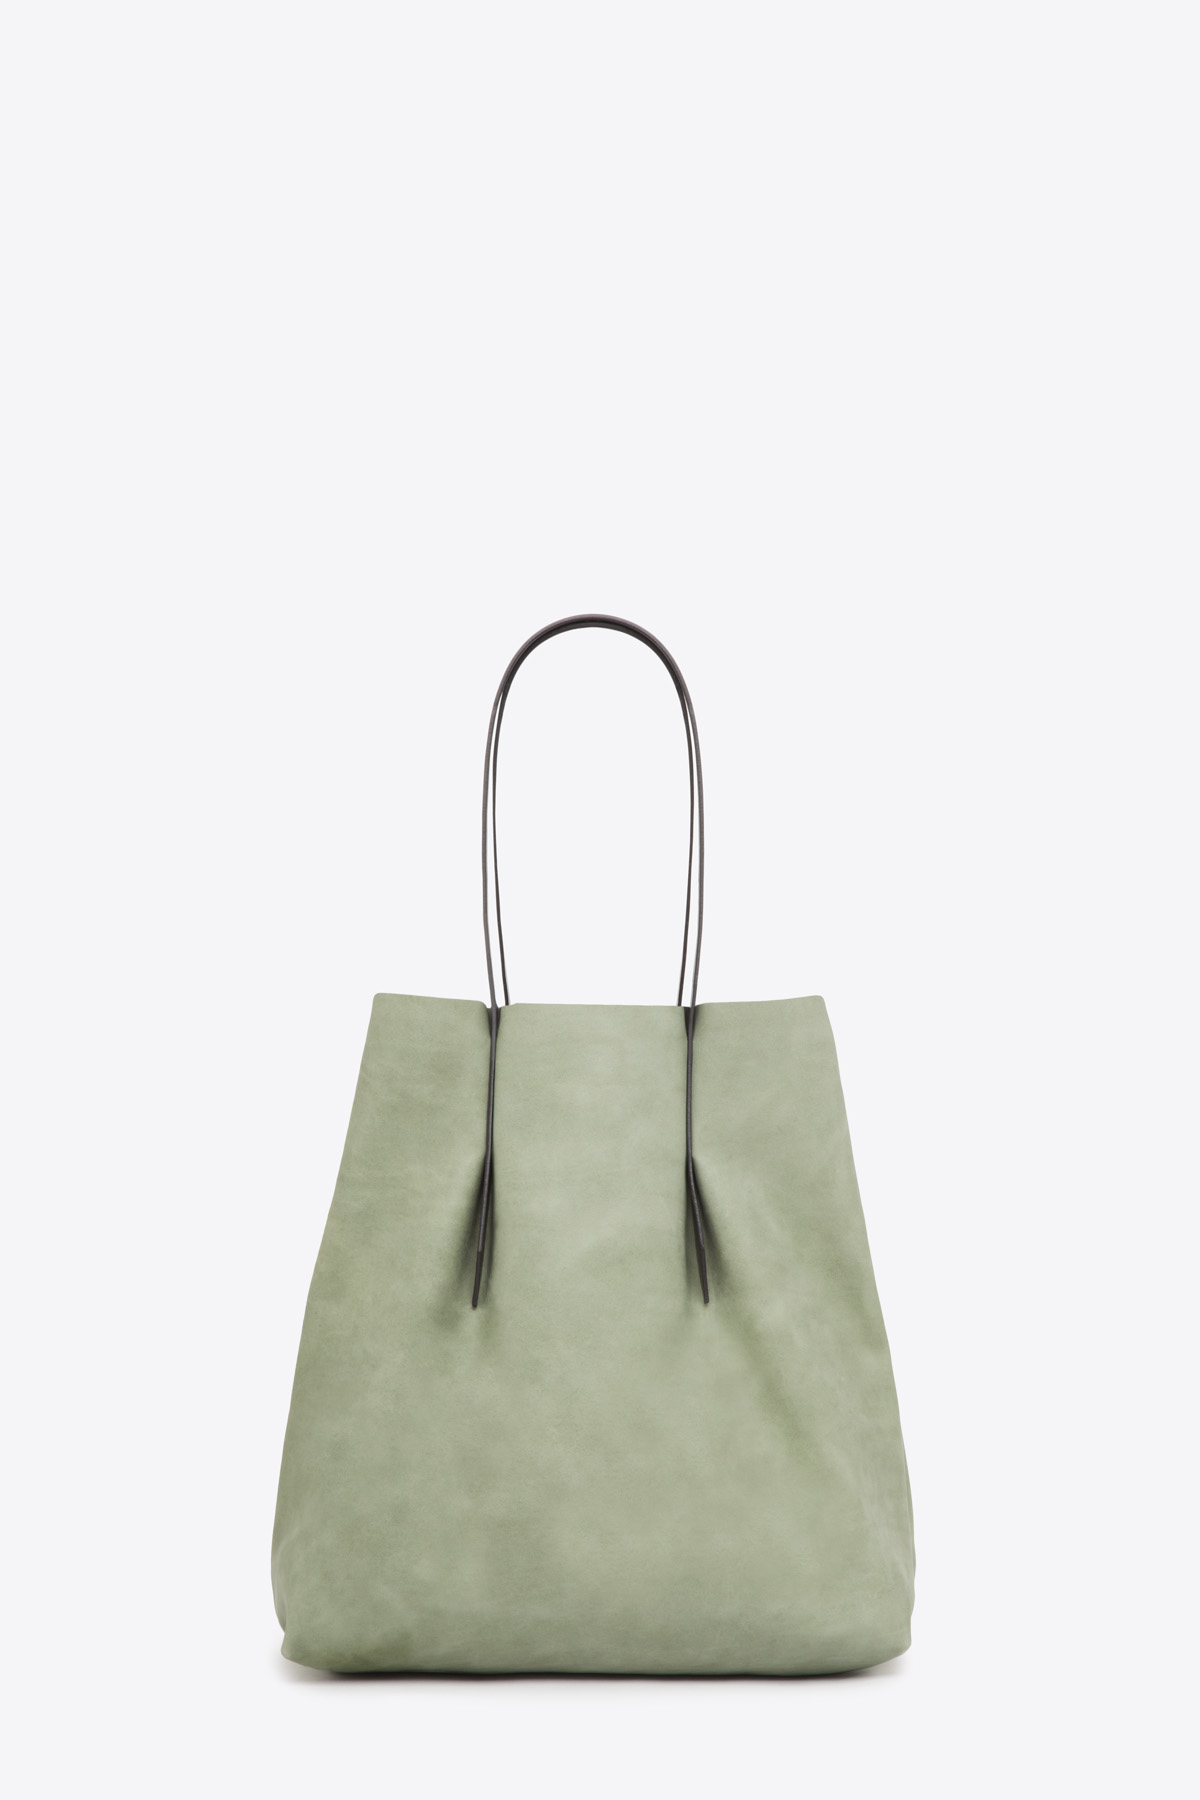 dclr006-shoppingbag-a9-jadegreen-back